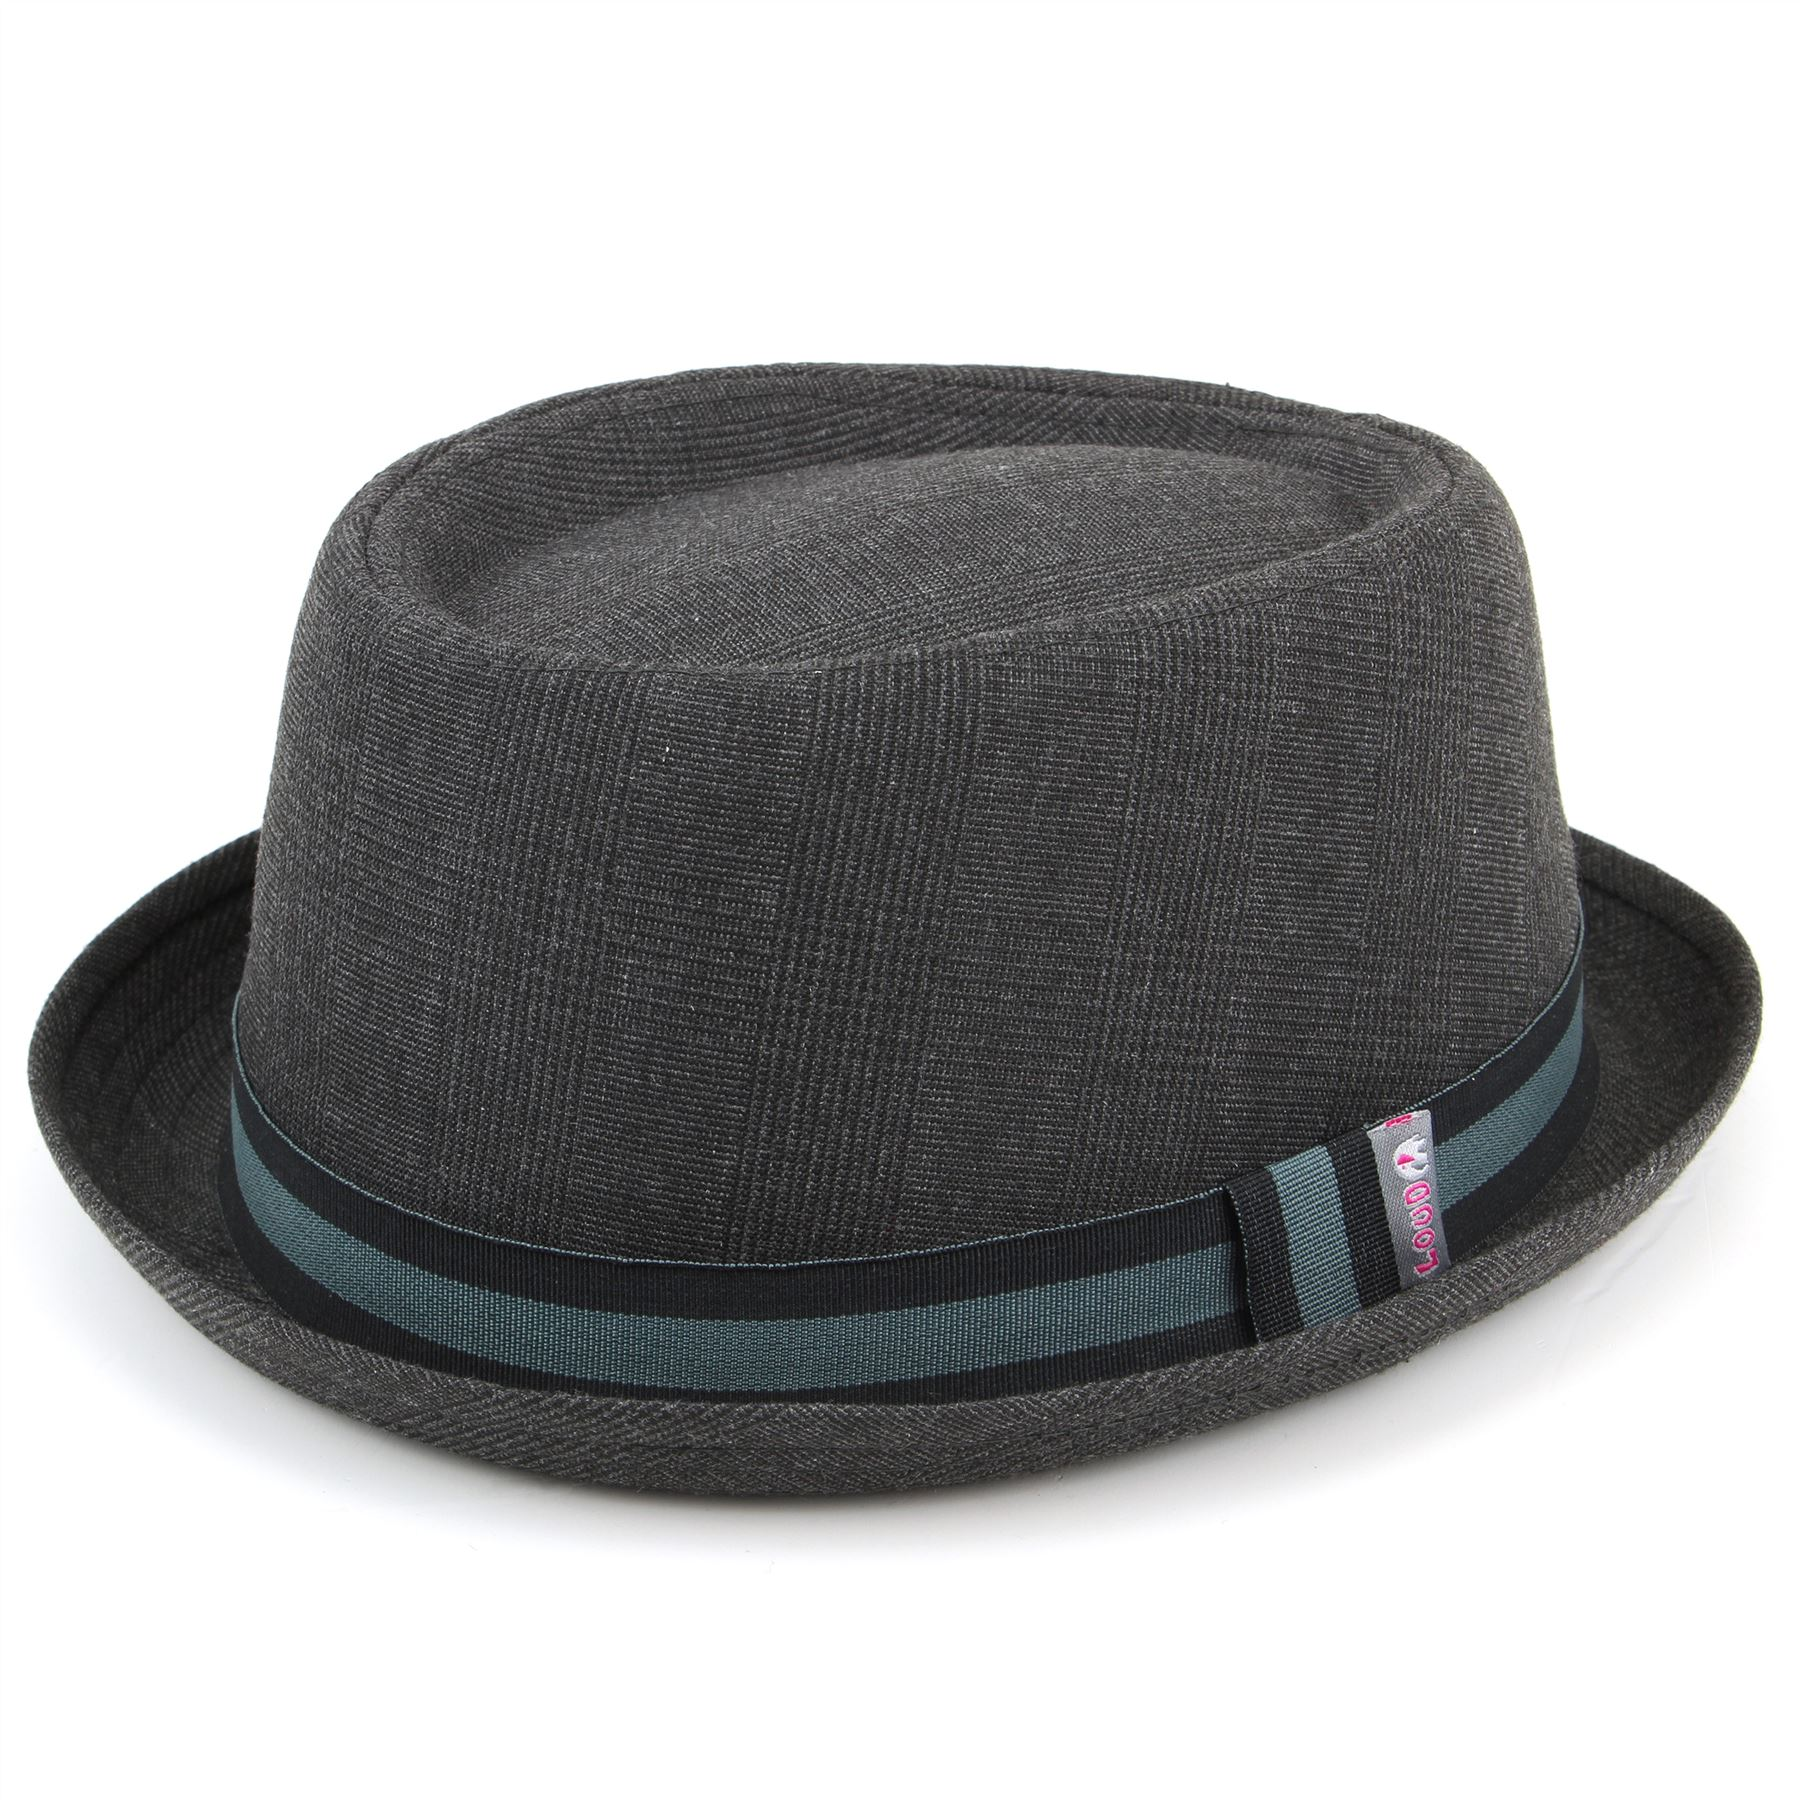 a65b080548a Details about Porkpie Pork Pie Hat Trilby Hawkins GREY Tweed Fedora Cap  Unisex